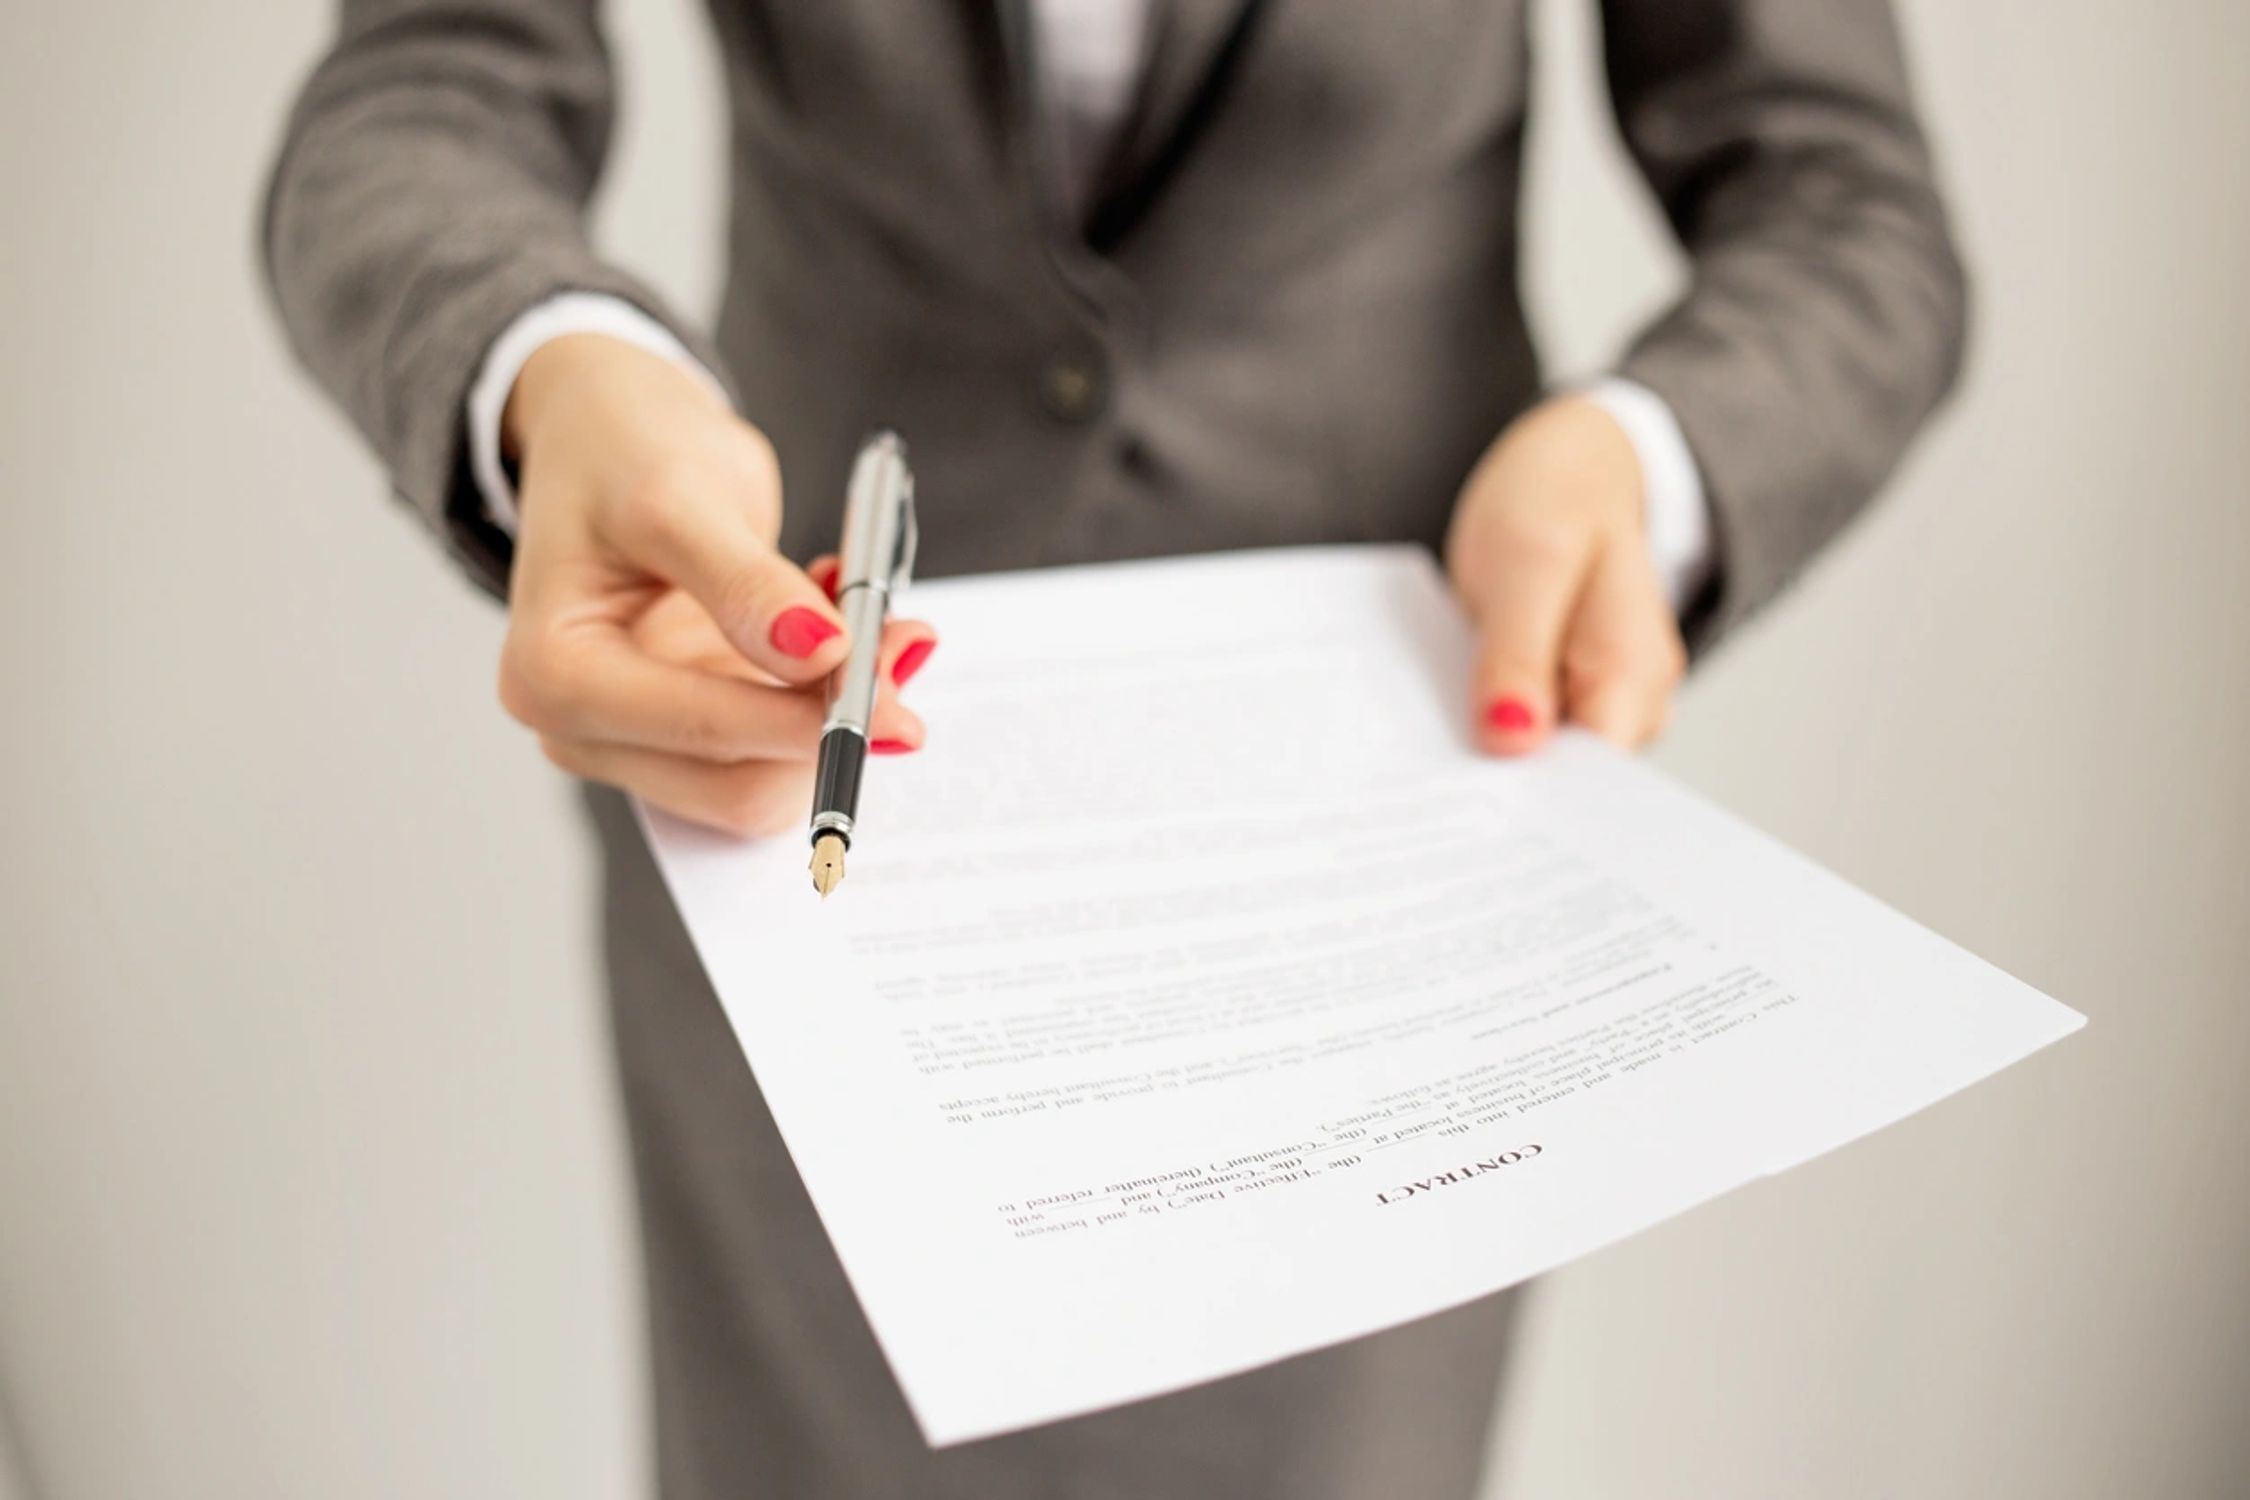 Notary Job offer, Notary public, Notary